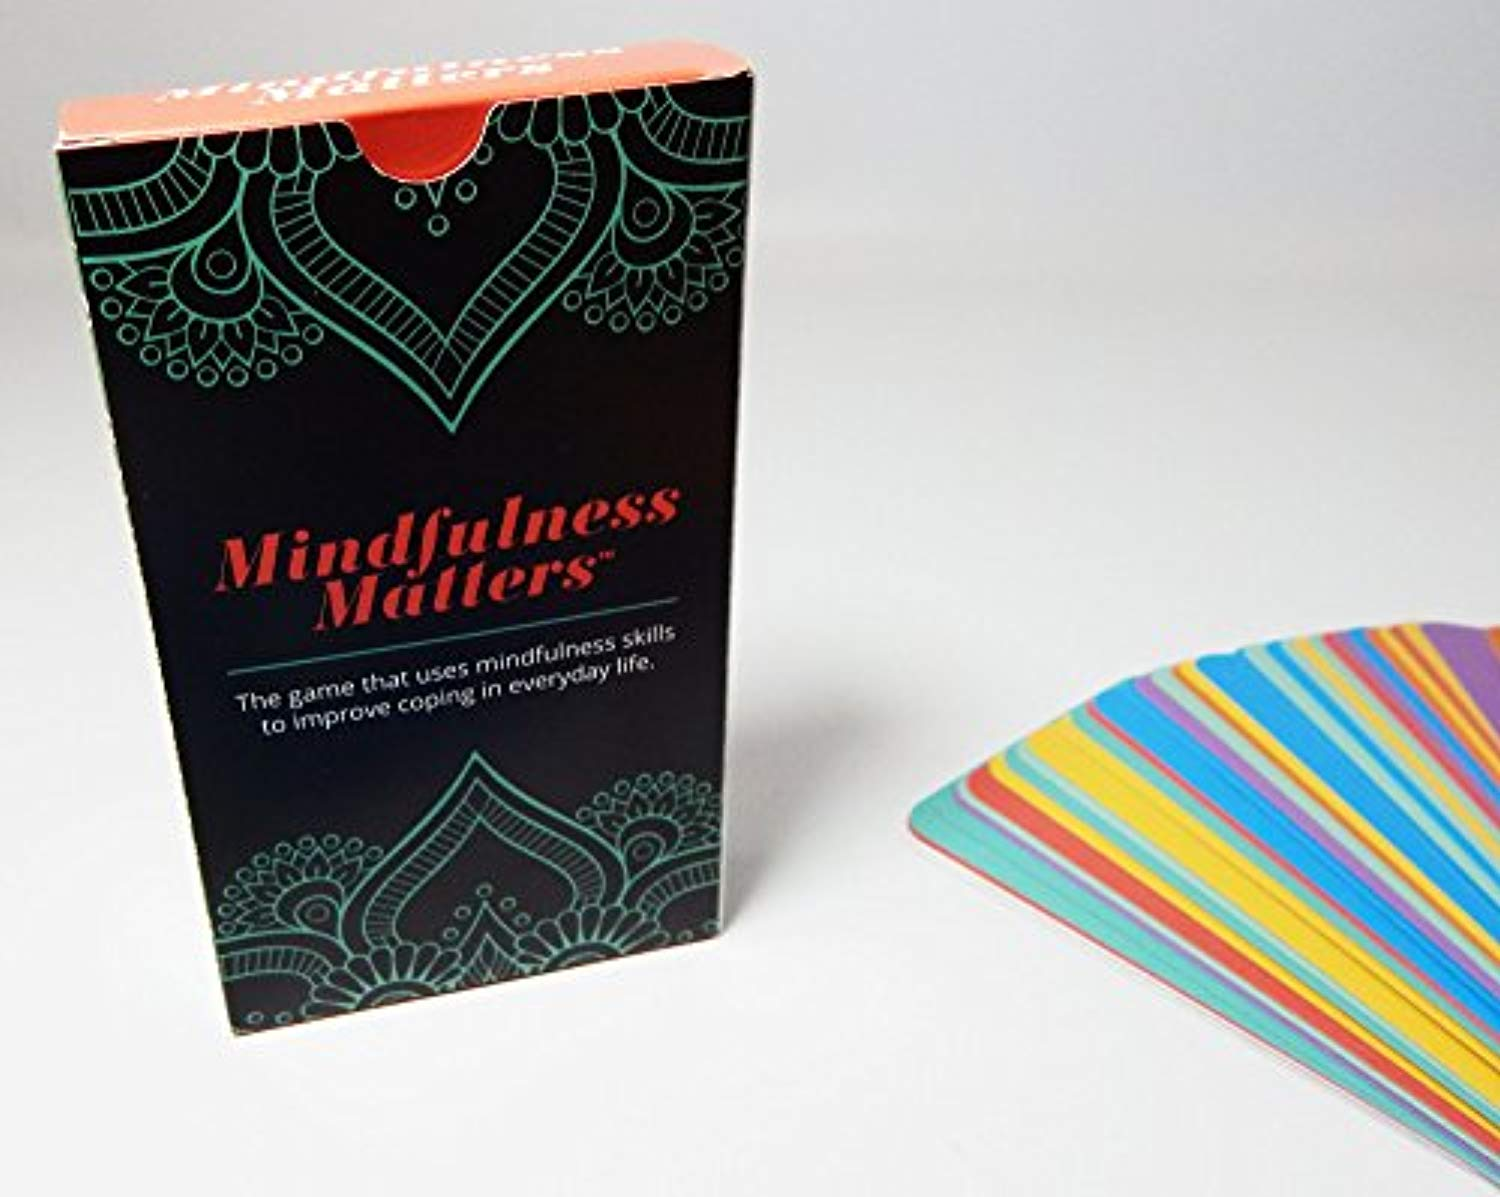 Mindfulness Matters: improve coping in everyday life